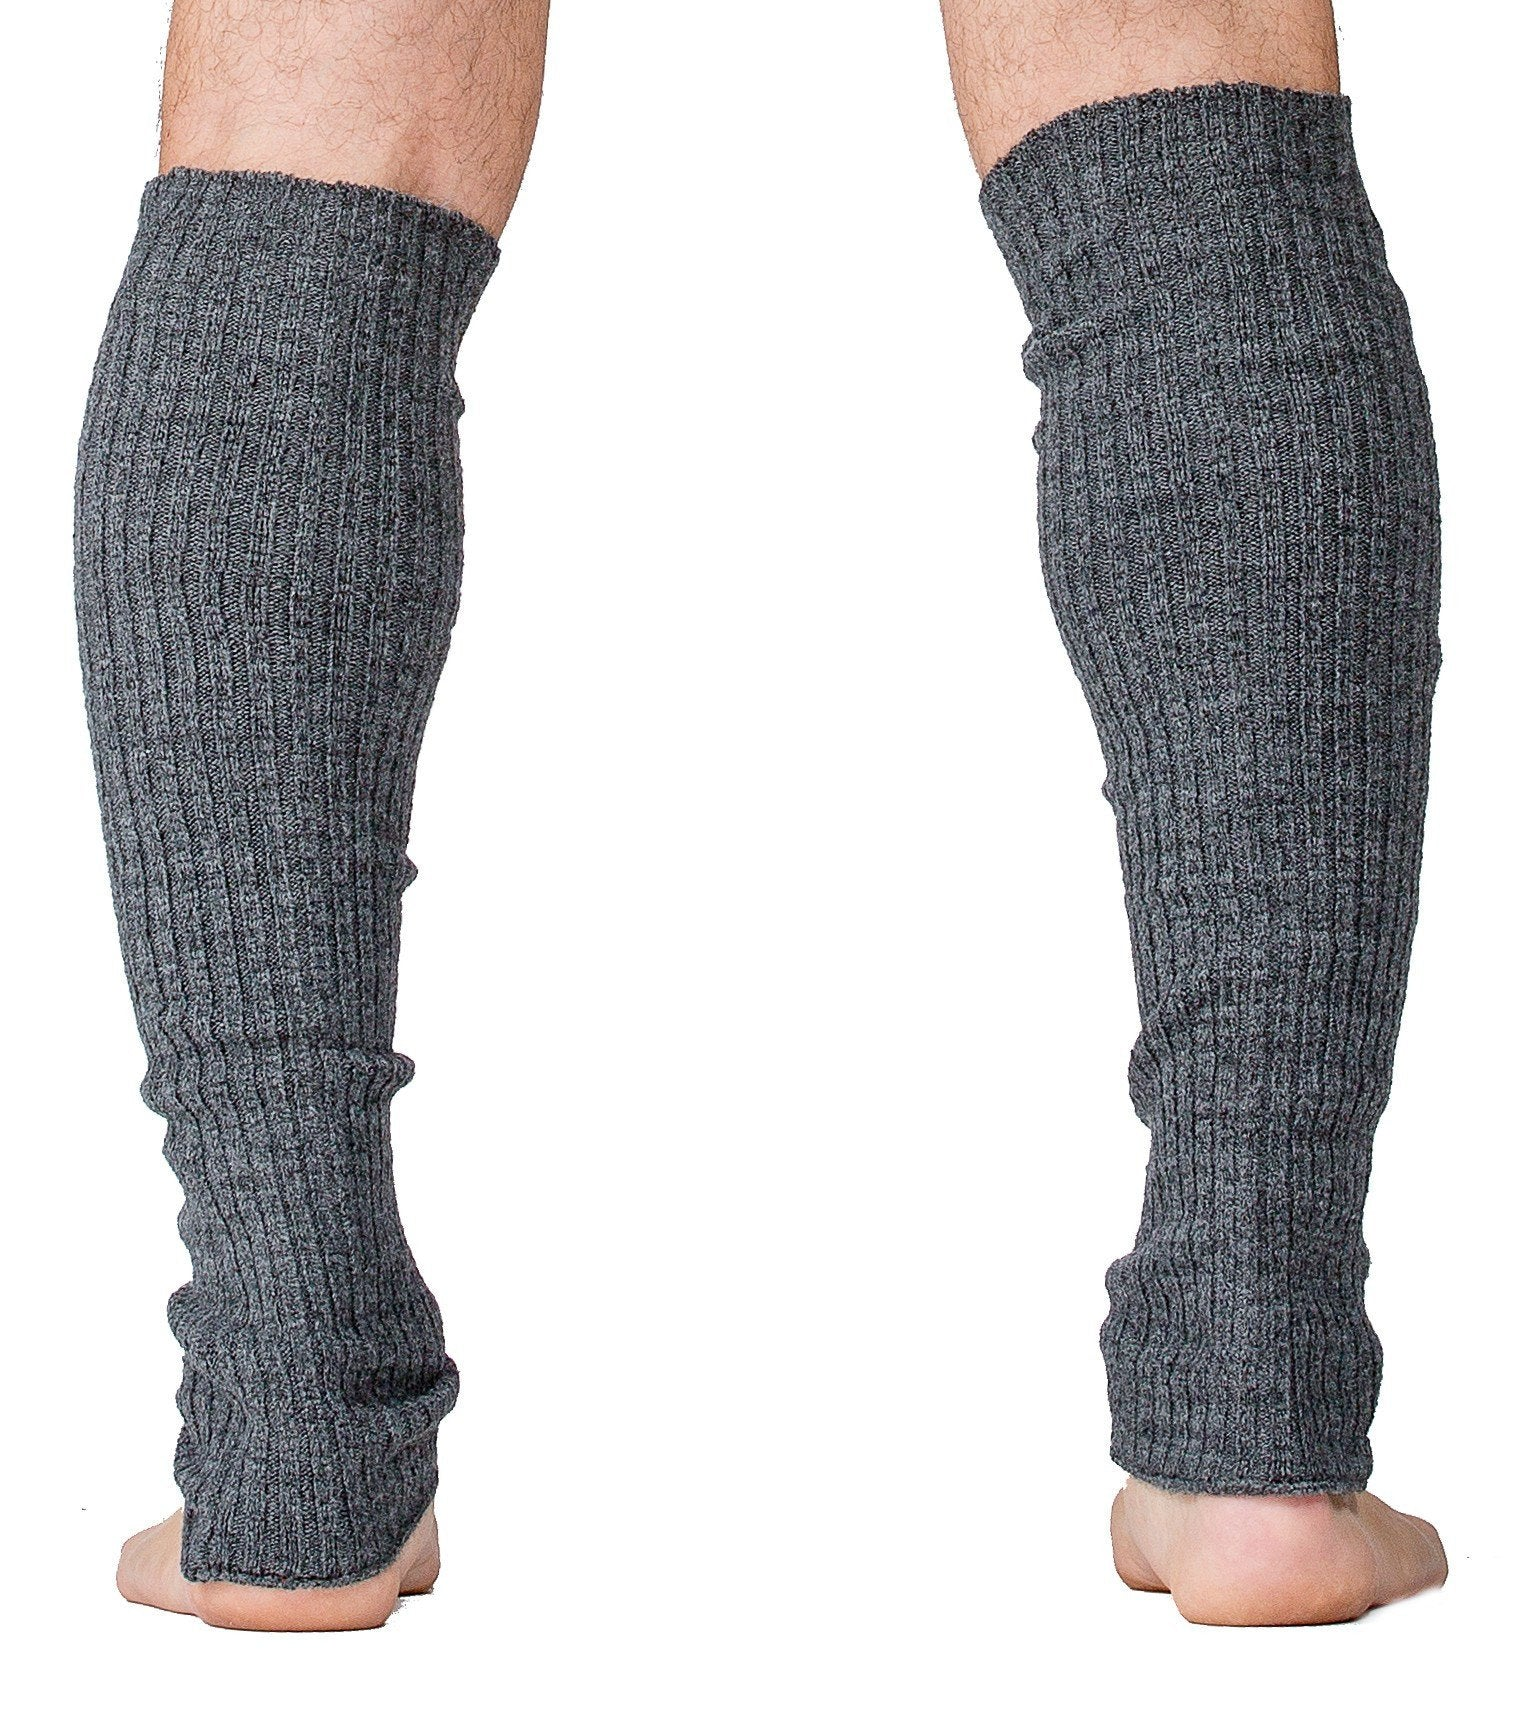 Charcoal / 16 Inch Leg Warmer Leg Warmers / Dark Gray / Men's Dancewear @KDdanceNewYork #MadeInUSA - 1